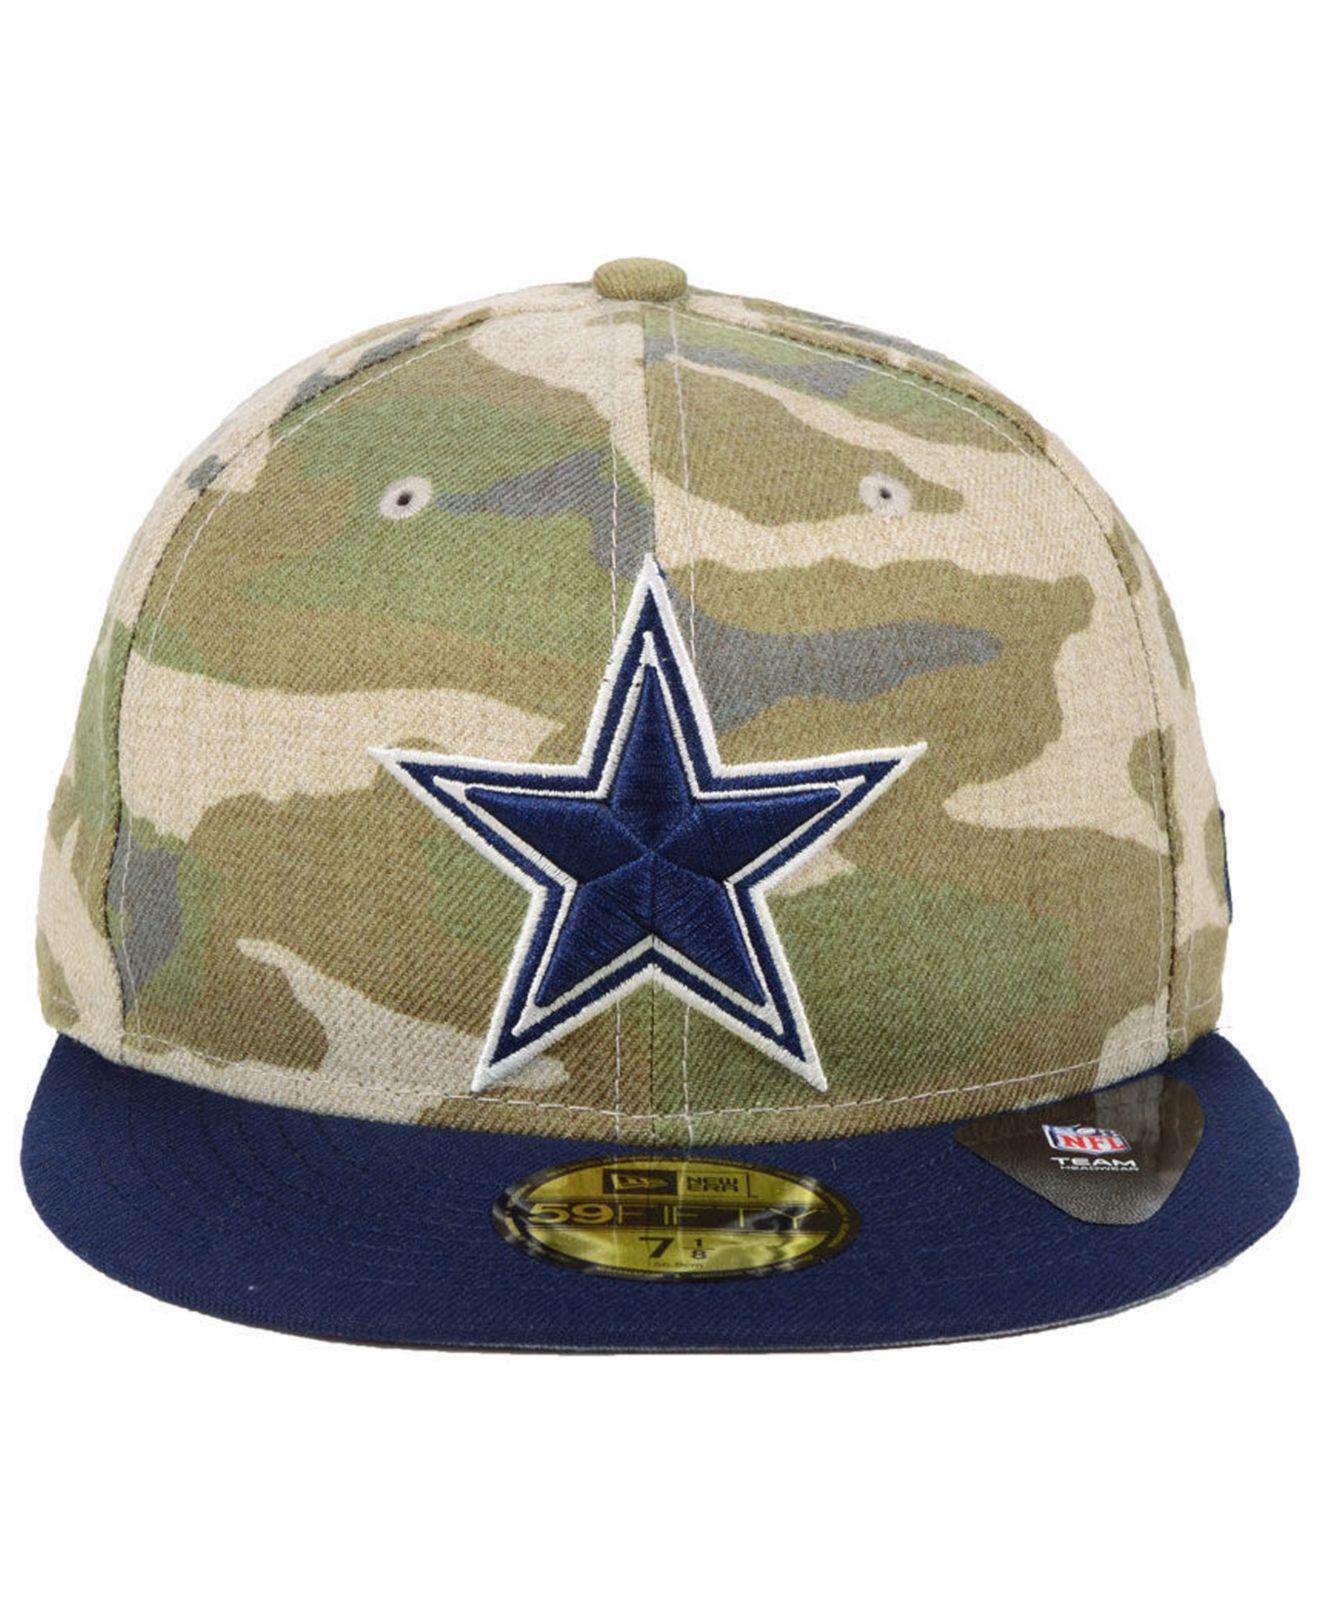 c69ef2d80f0f3 Lyst - KTZ Dallas Cowboys Vintage Camo 59fifty Fitted Cap in Green for Men